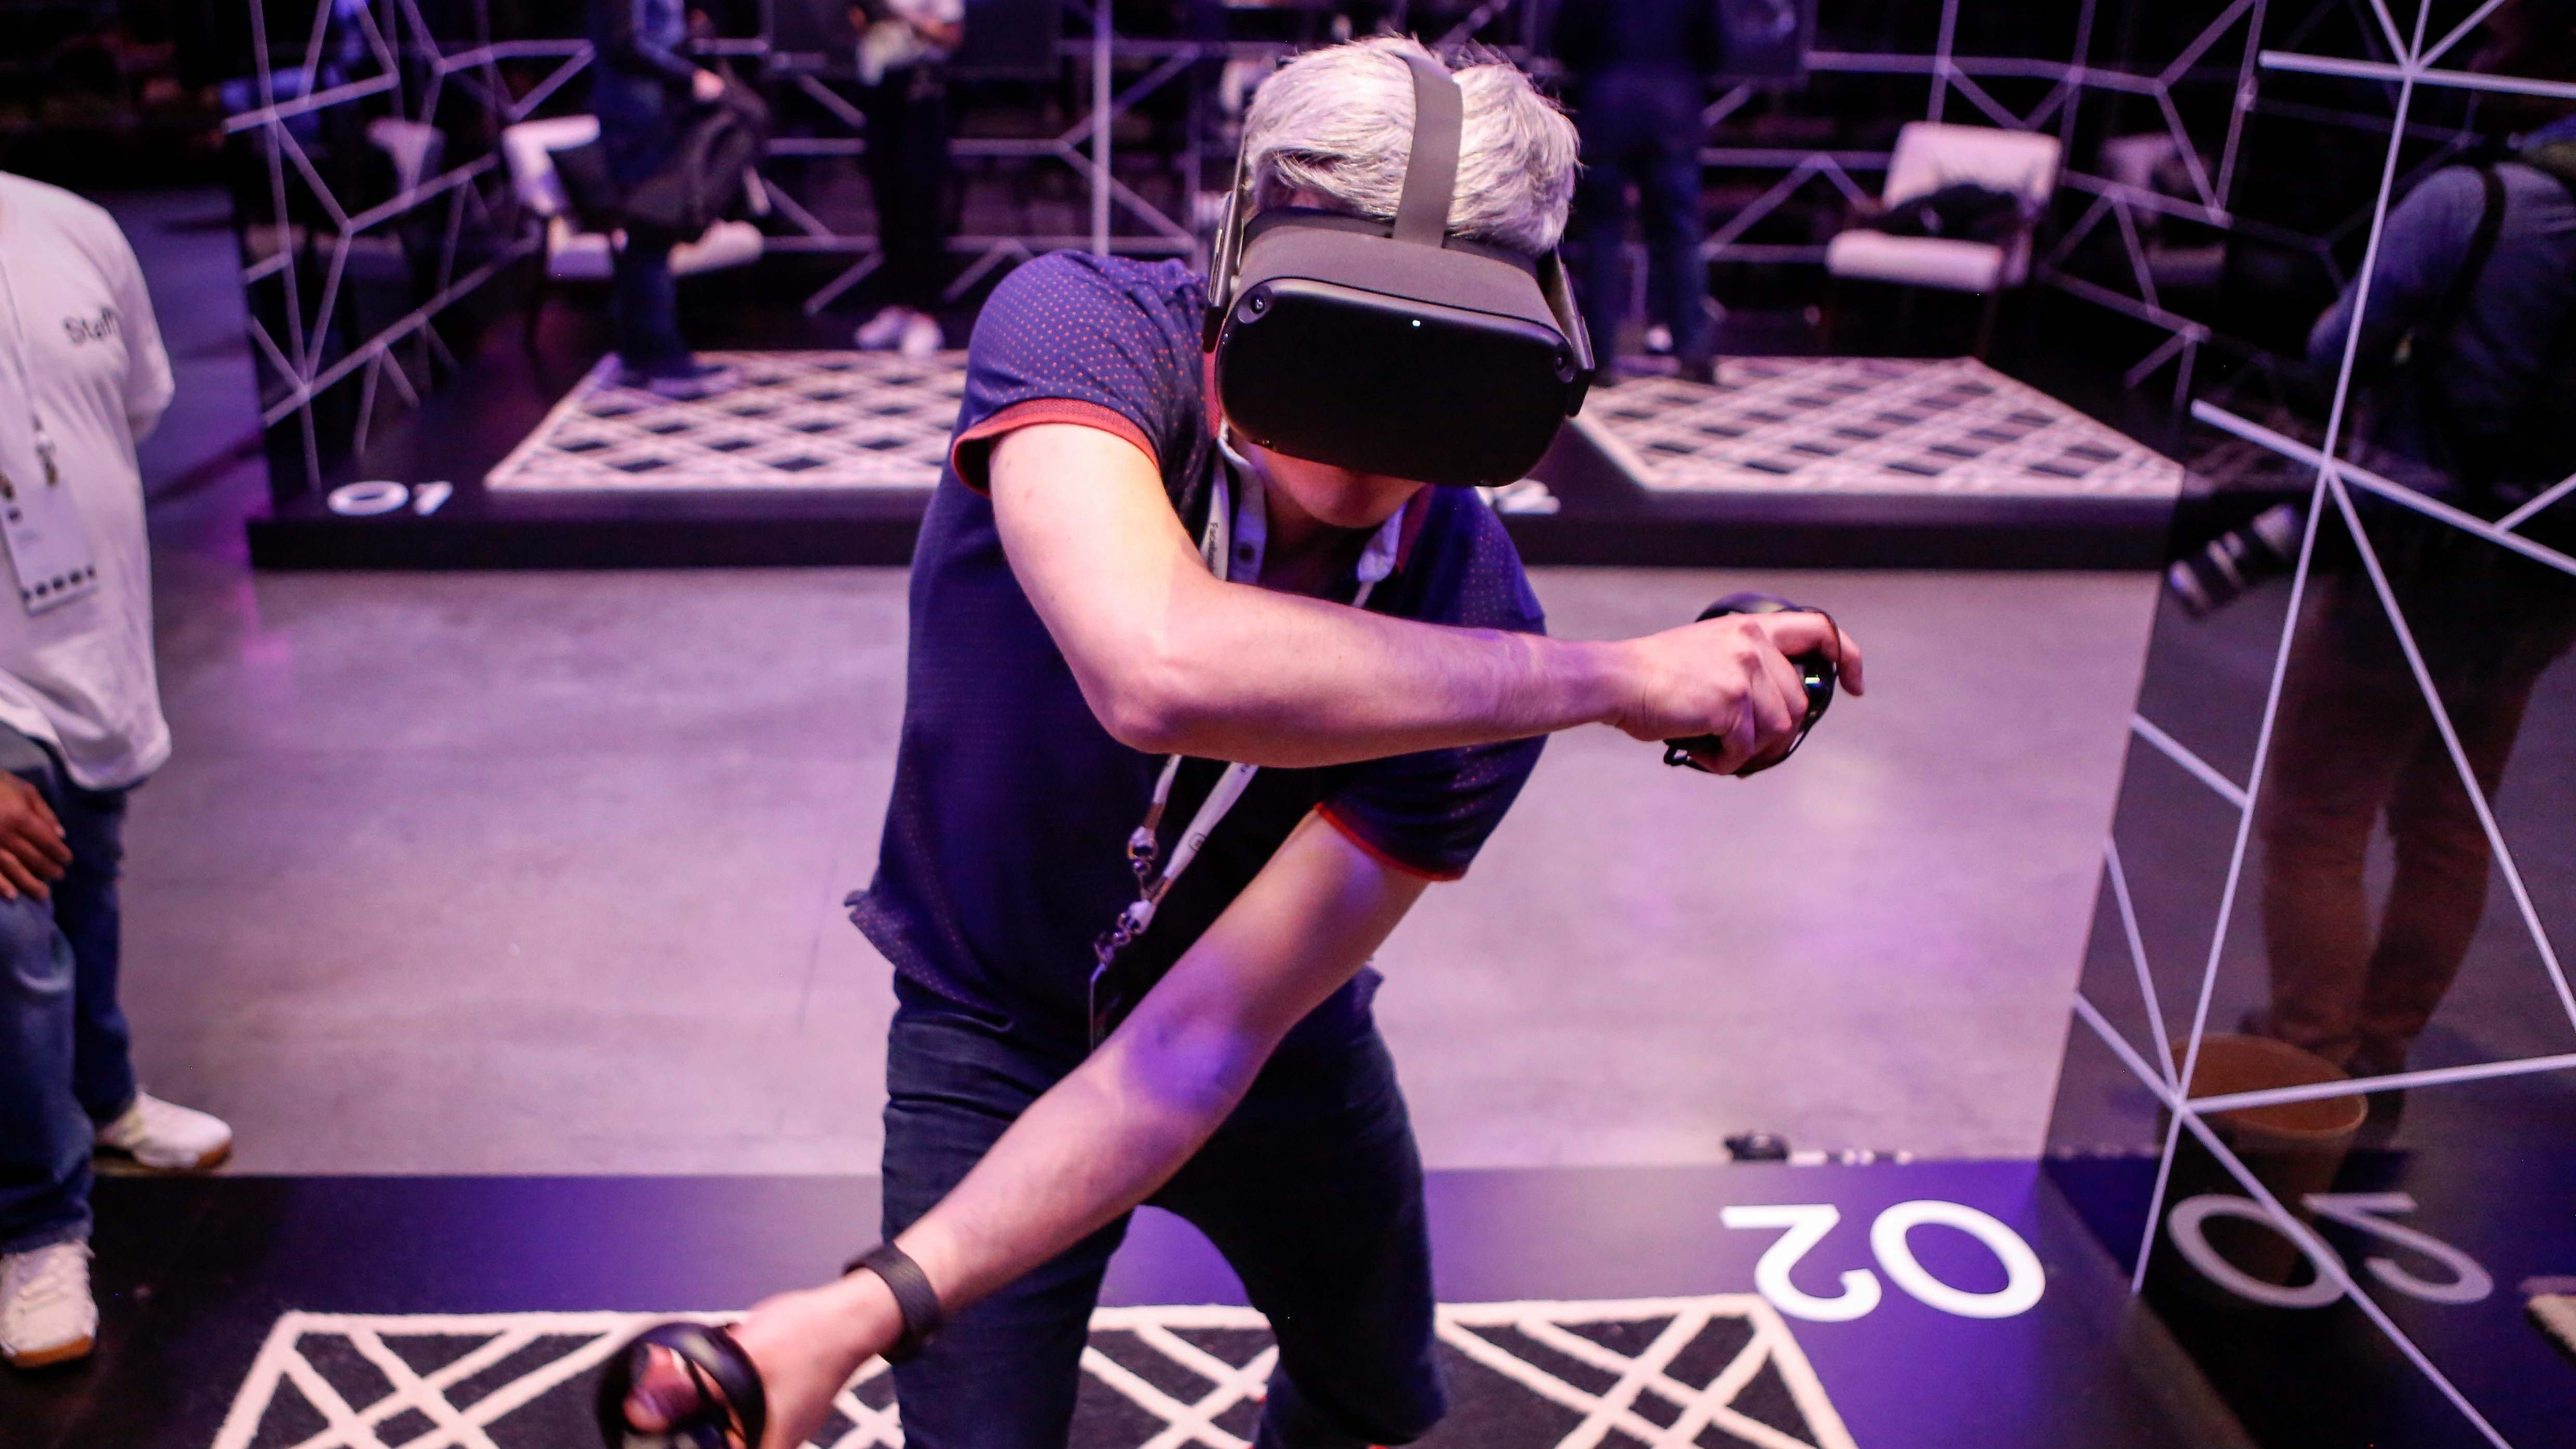 If Oculus Is Actually Making A Slimmer Quest VR Headset, I Might Buy It